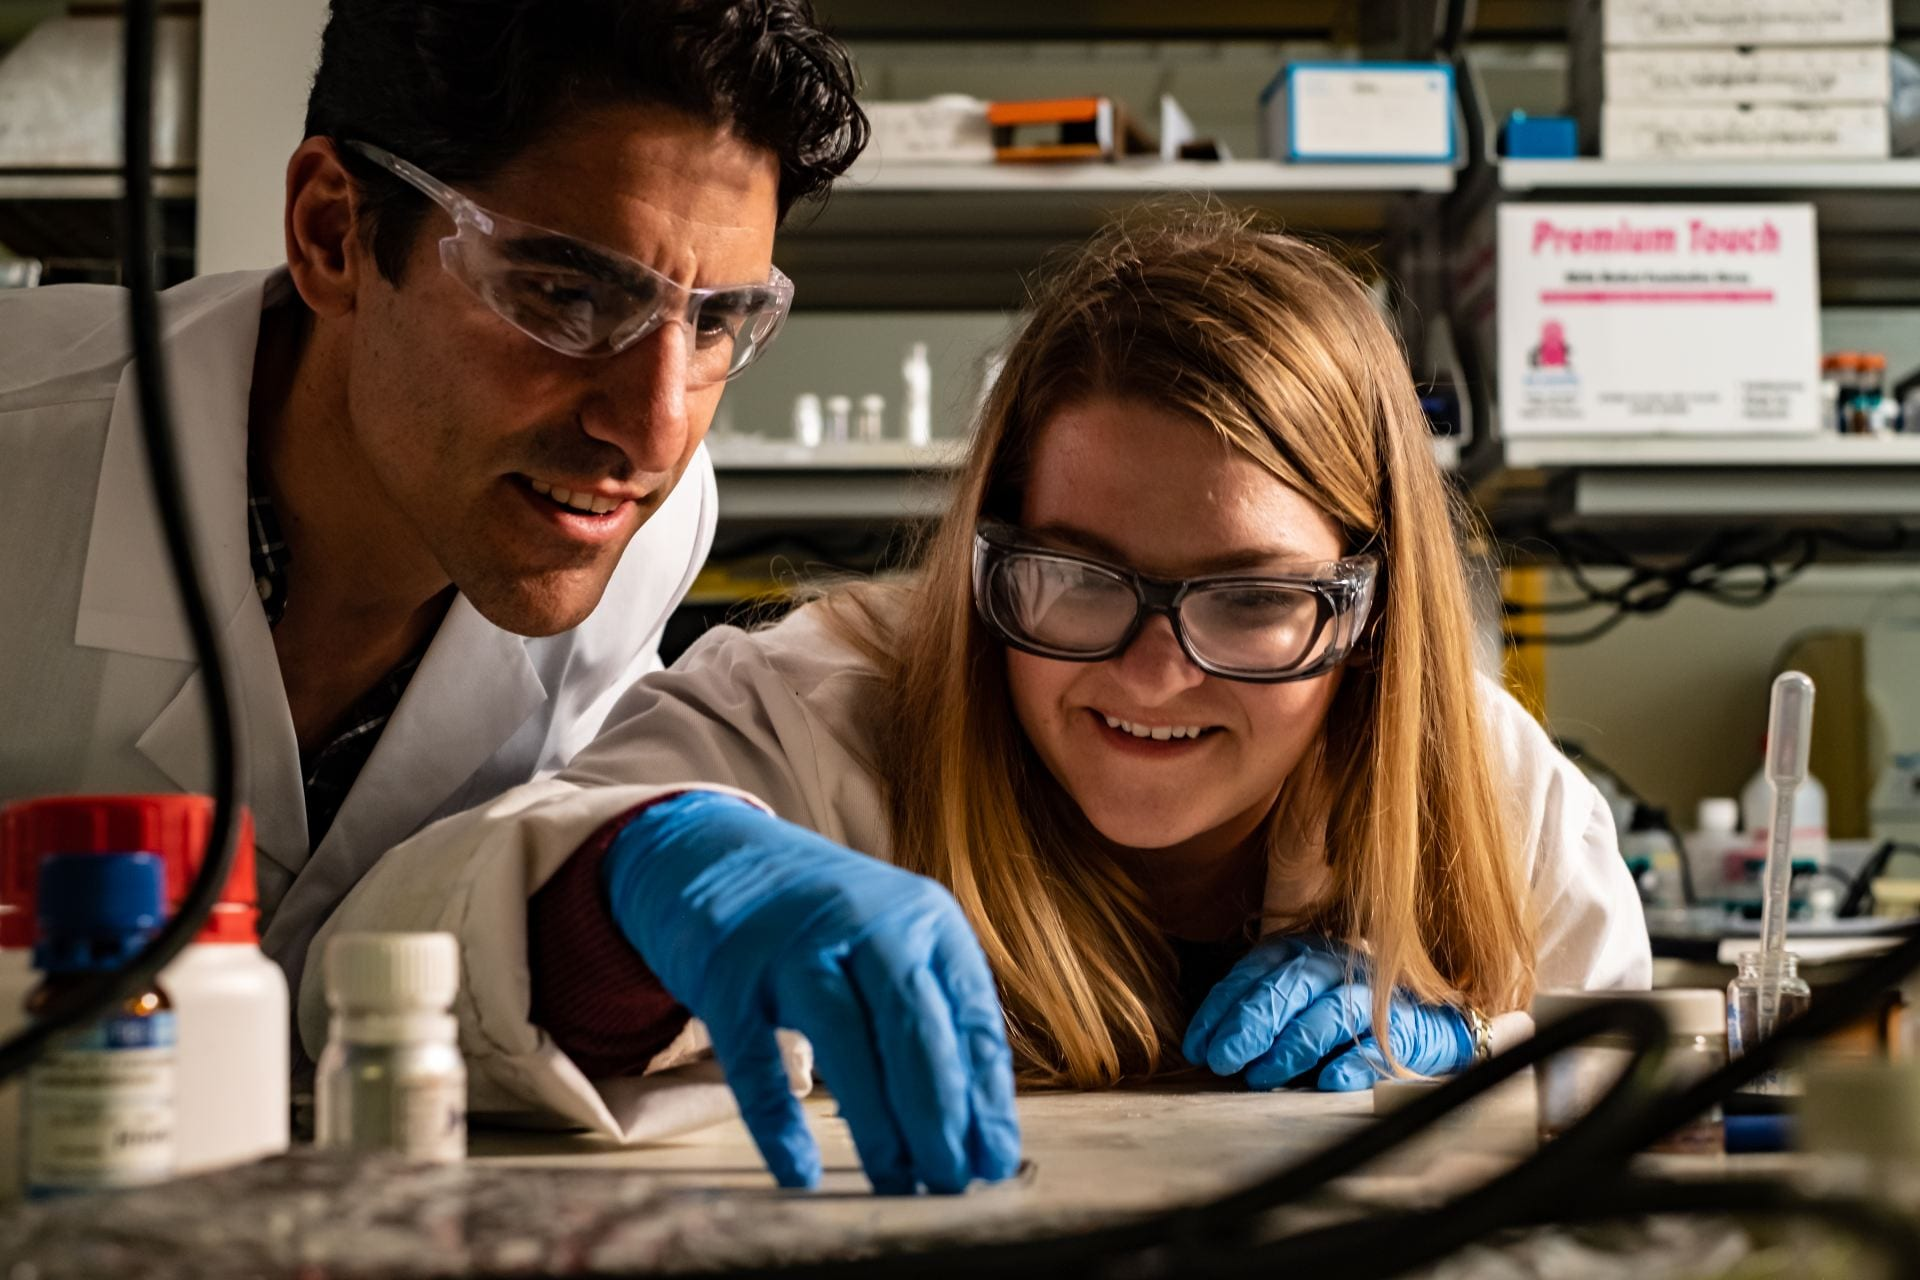 Rice University materials scientist Rafael Verduzco and graduate student Morgan Barnes check a sample while working on shape-shifting polymers. They have created a liquid crystal elastomer that can be molded into shapes that shift from one to another when heated. (Credit: Jeff Fitlow/Rice University)